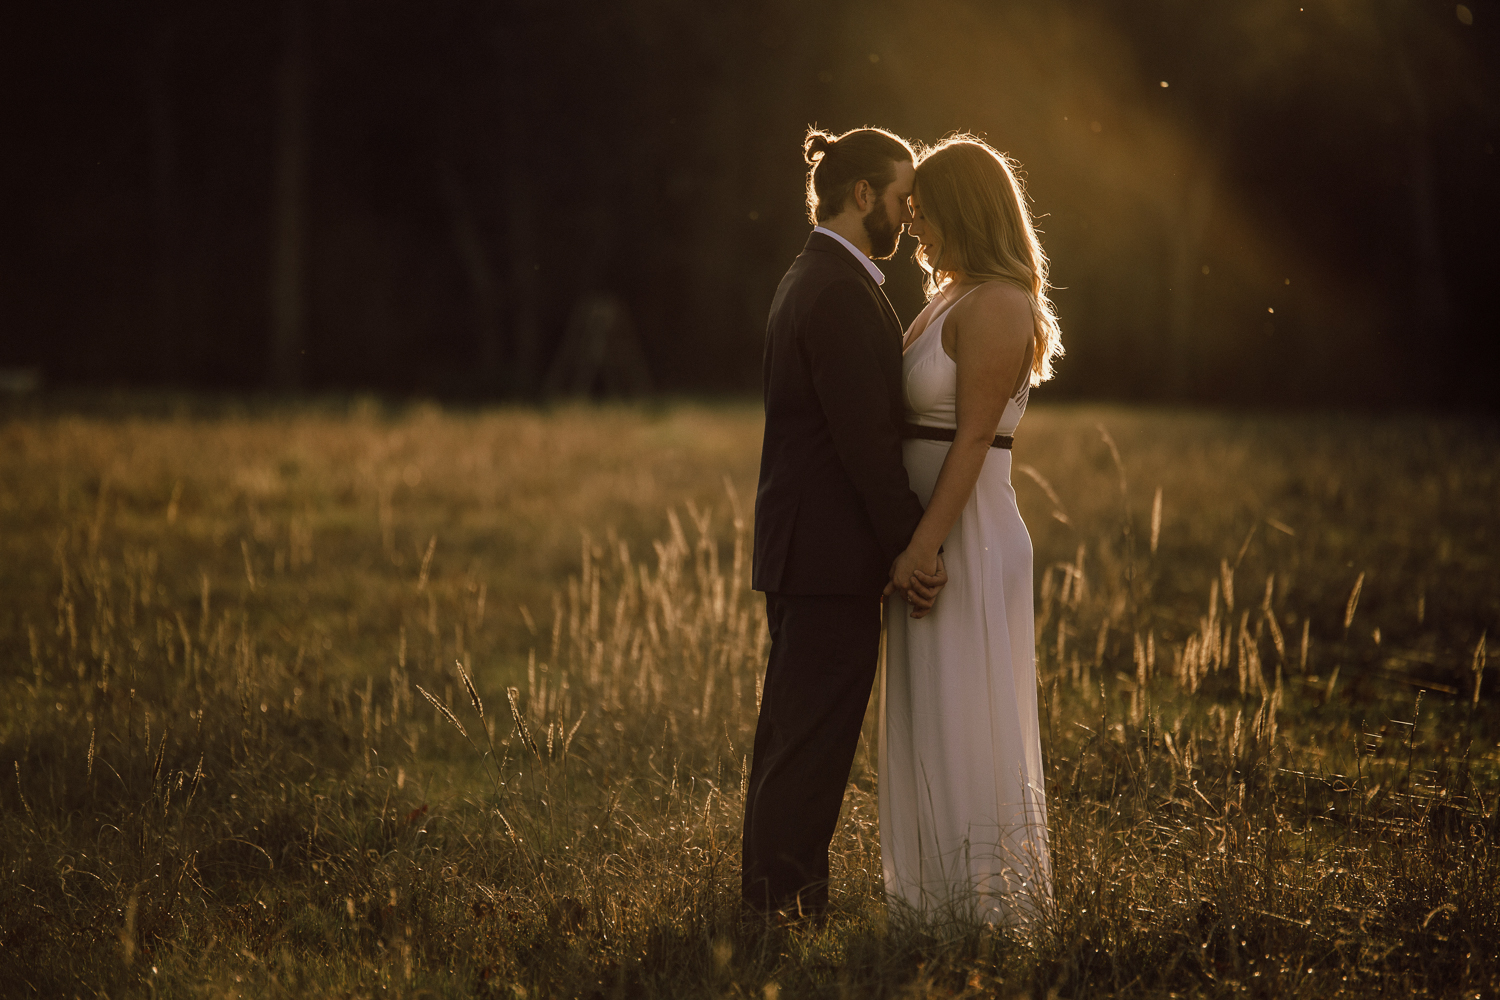 Wedding couple pictures at sunset in a field.